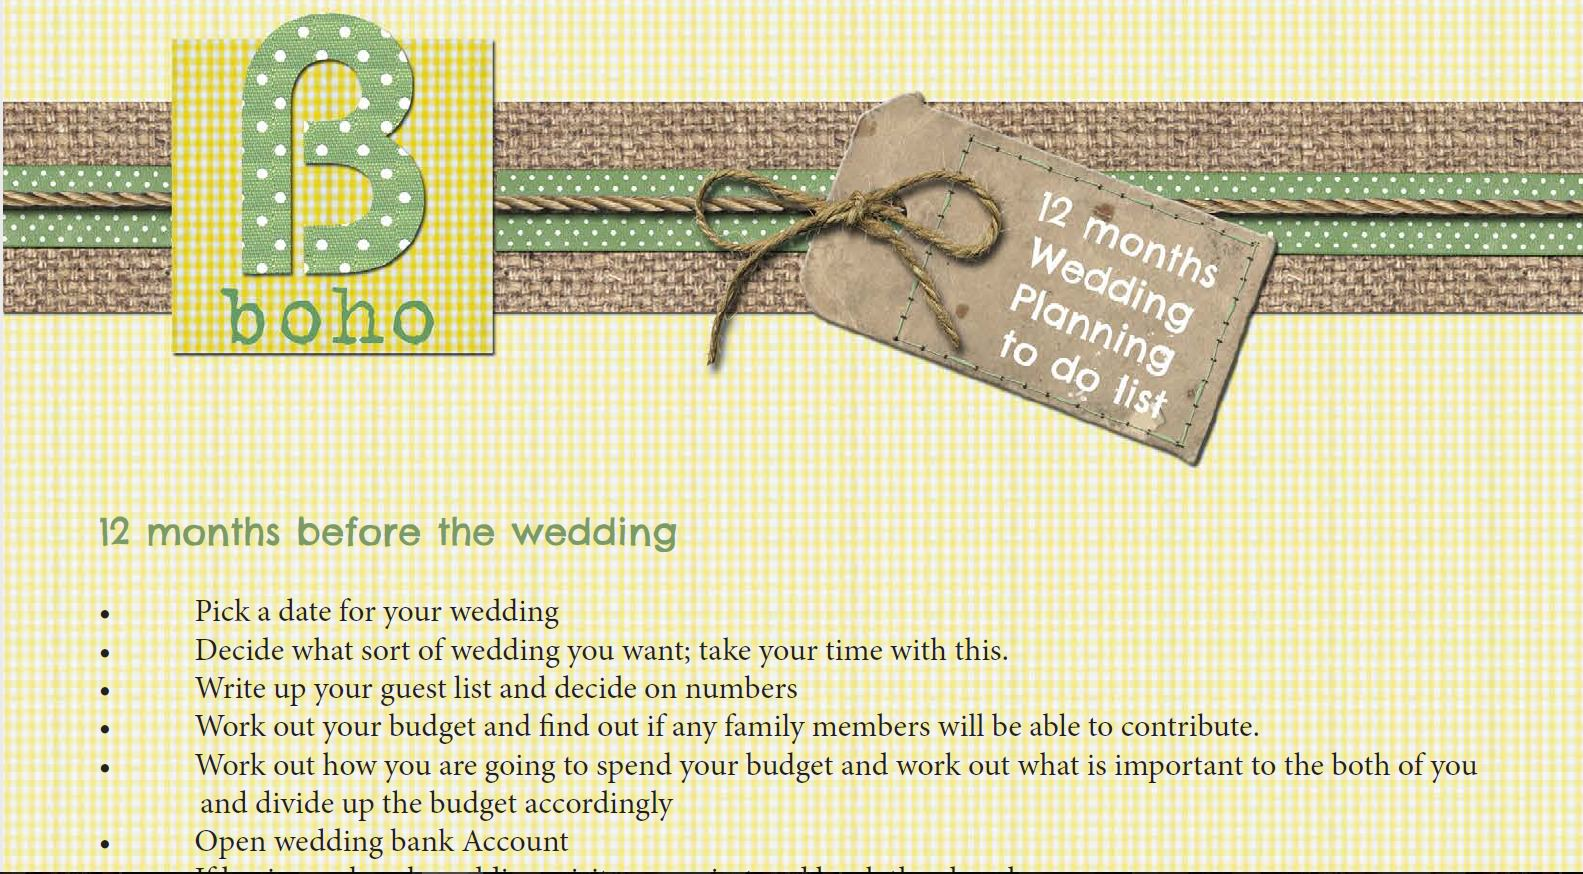 Wedding Planning Made Easy With Our FREE Downloadable 12 Month Wedding Planner